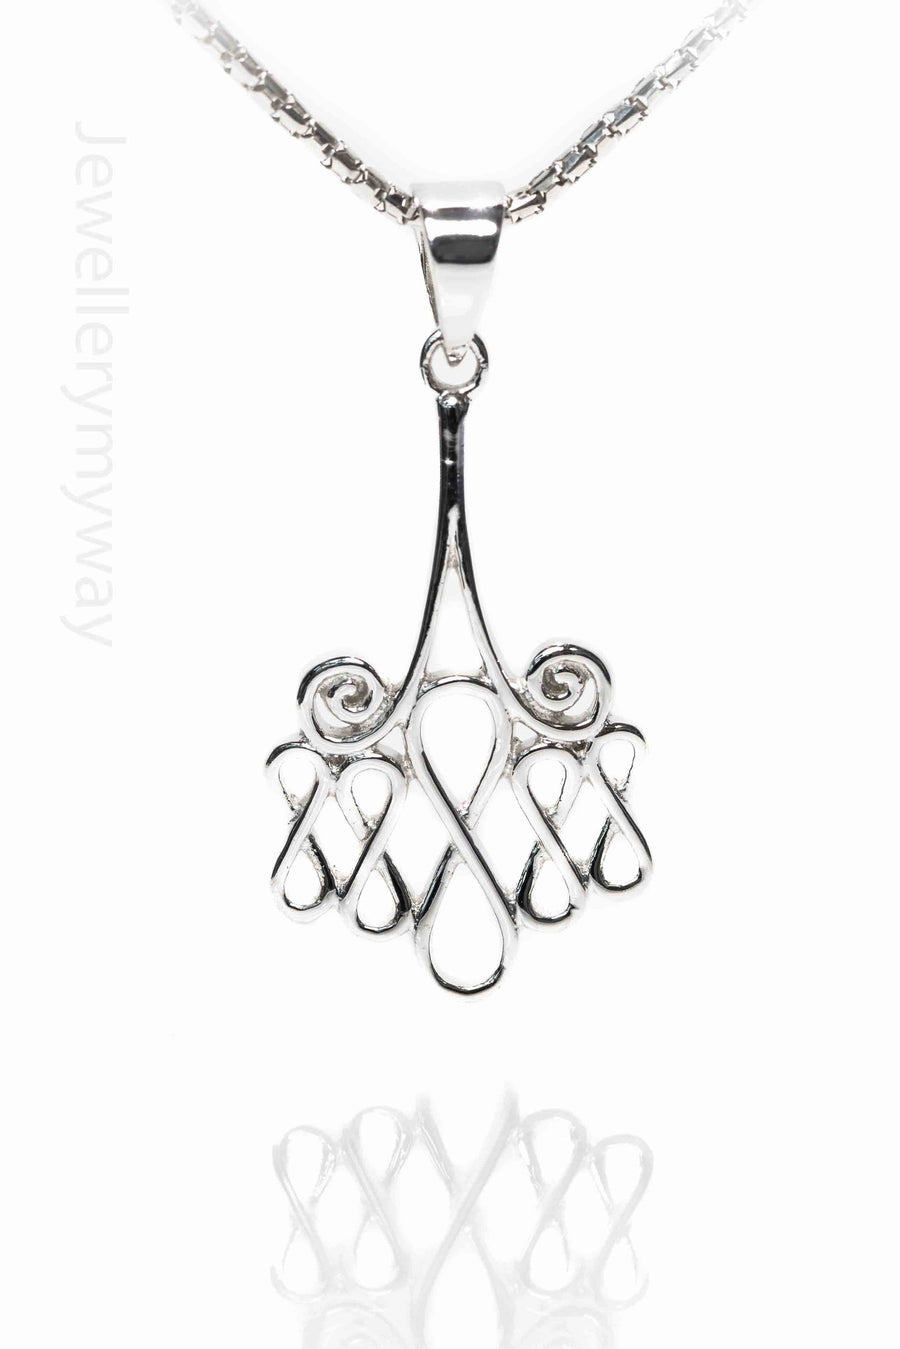 Art Deco Pendant from the Infinity Range